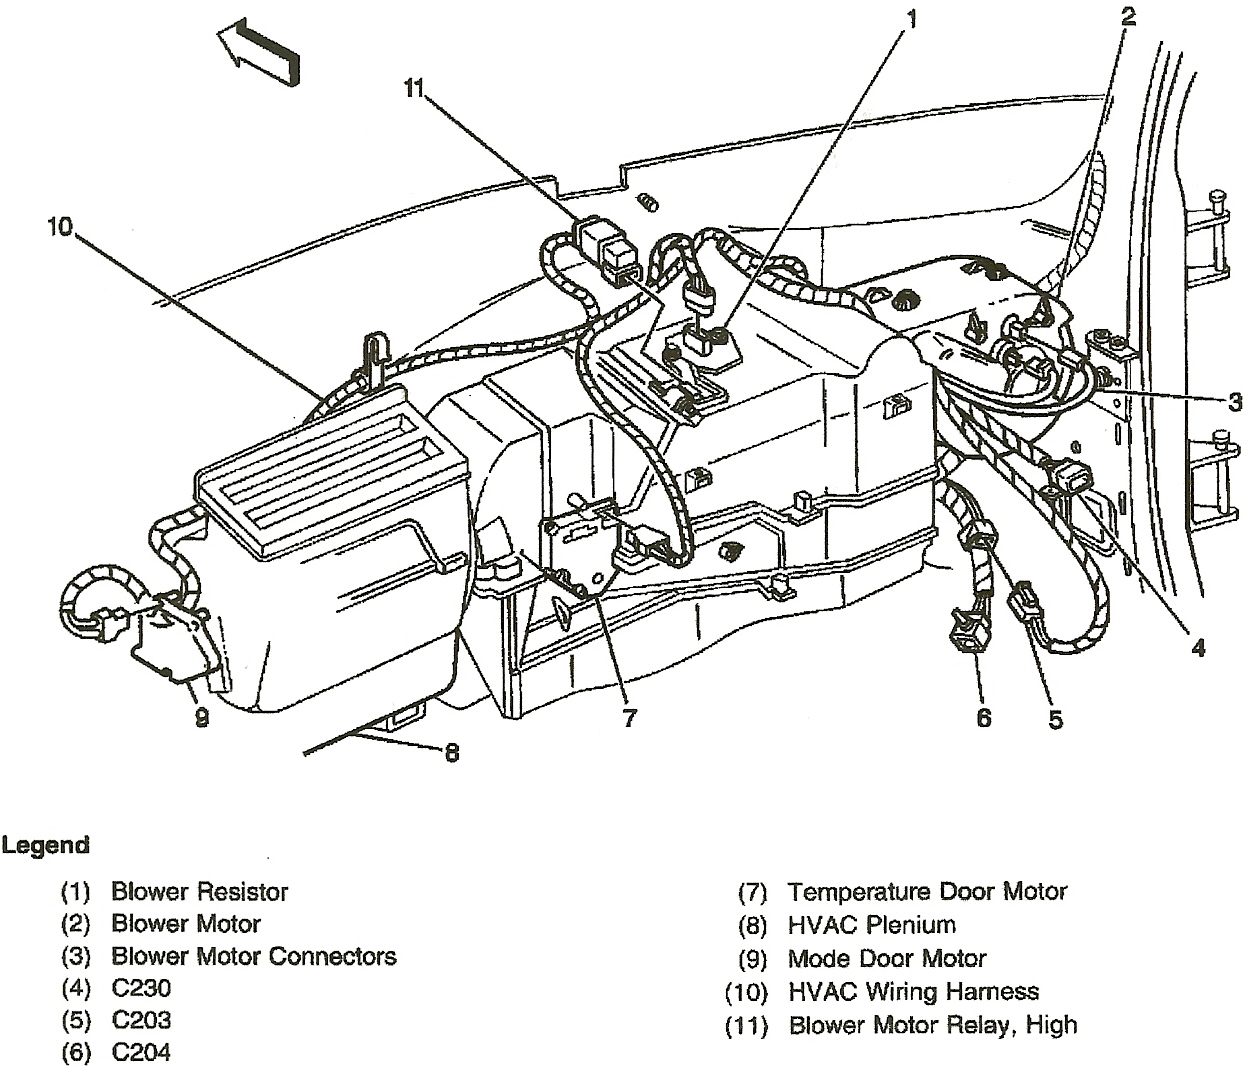 2004 gmc envoy xuv radio wiring diagram 1990 ford f150 vacuum slt all library how to test a chevy suburban blower motor my pro street 2002 parts